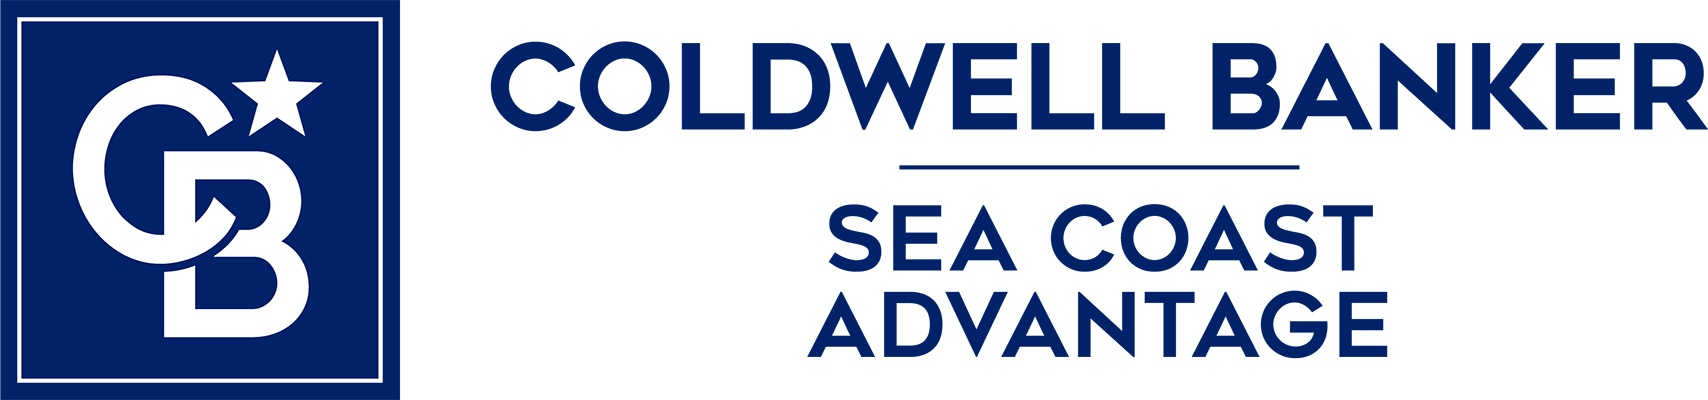 Bonnie Chambers - Coldwell Banker Sea Coast Advantage Realty Logo